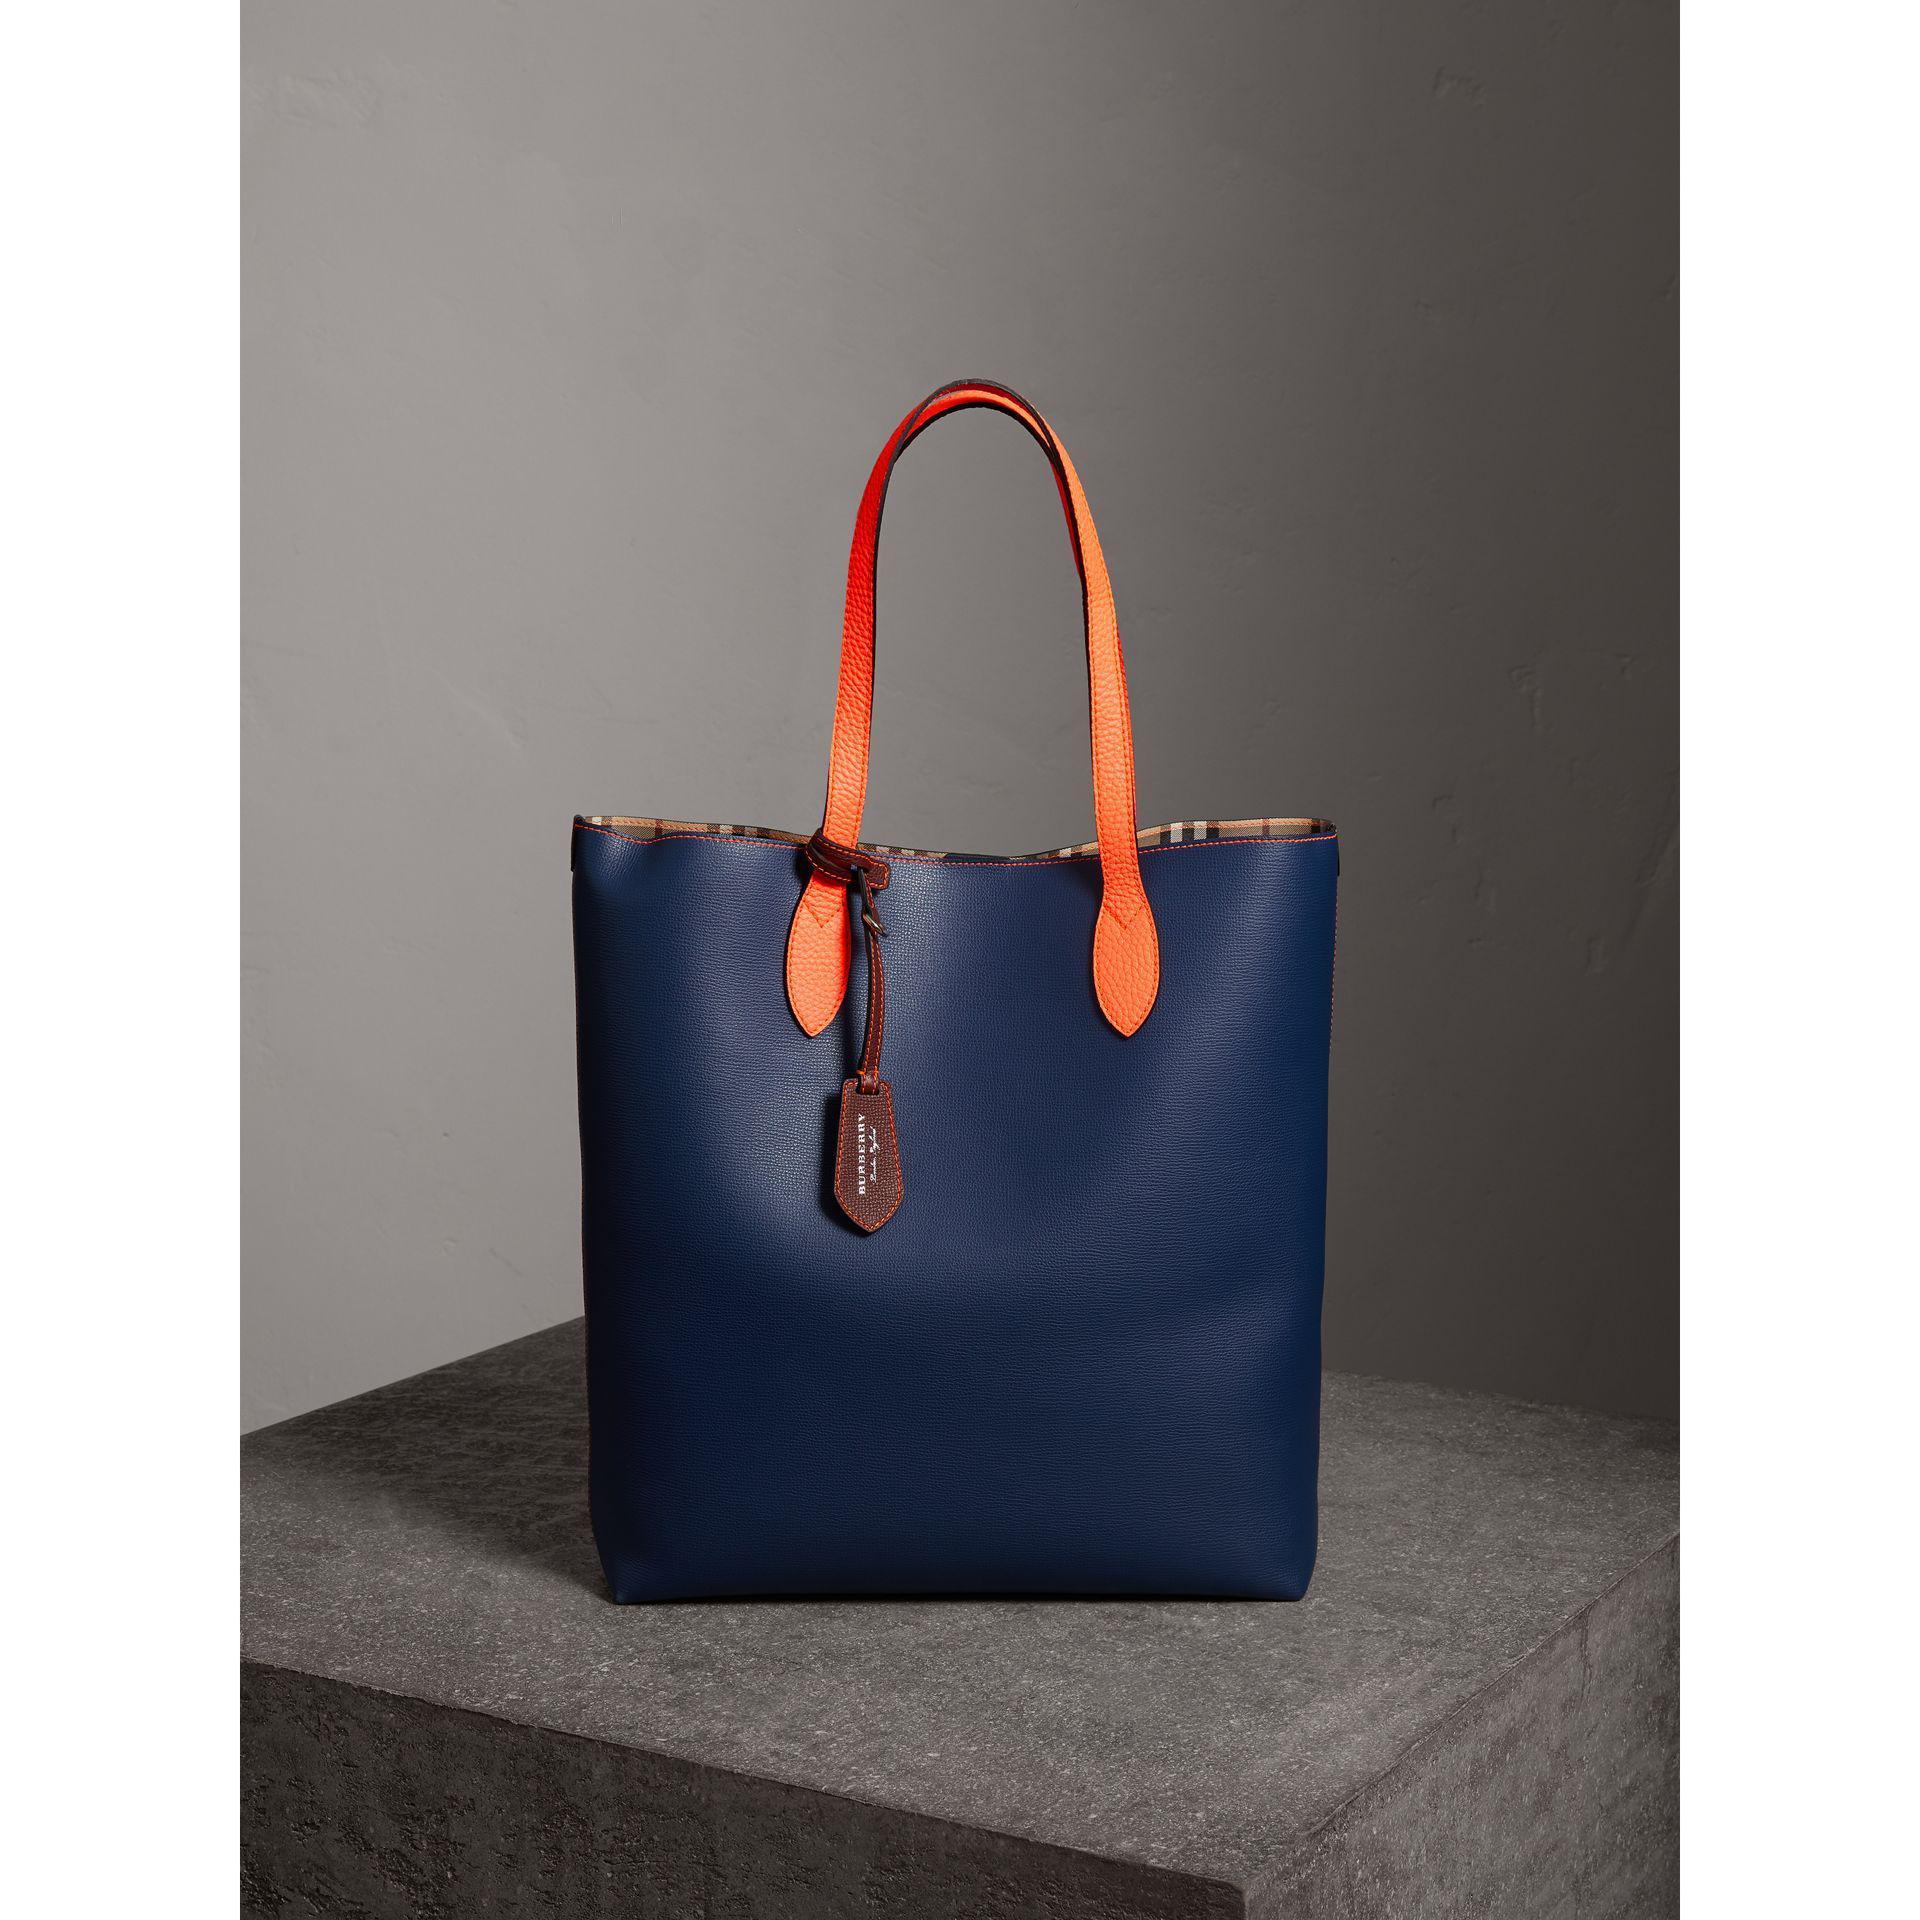 a14c37247388 Burberry Medium Two-tone Coated Leather Tote in Blue - Lyst